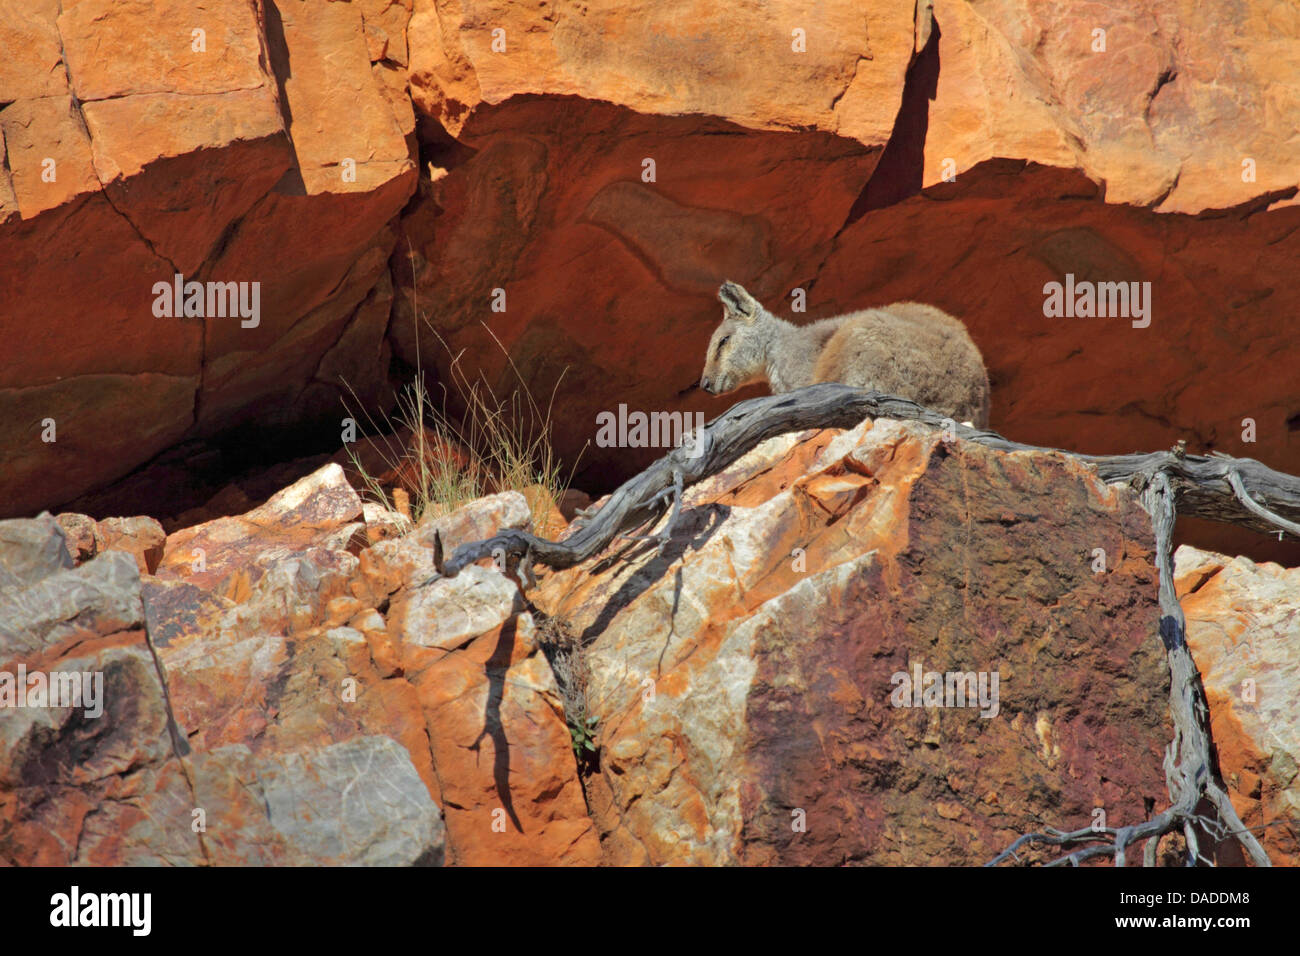 Black-footed rock wallaby (Petrogale lateralis), sitting in a rock crevice, Australia, Northern Territory, Western - Stock Image